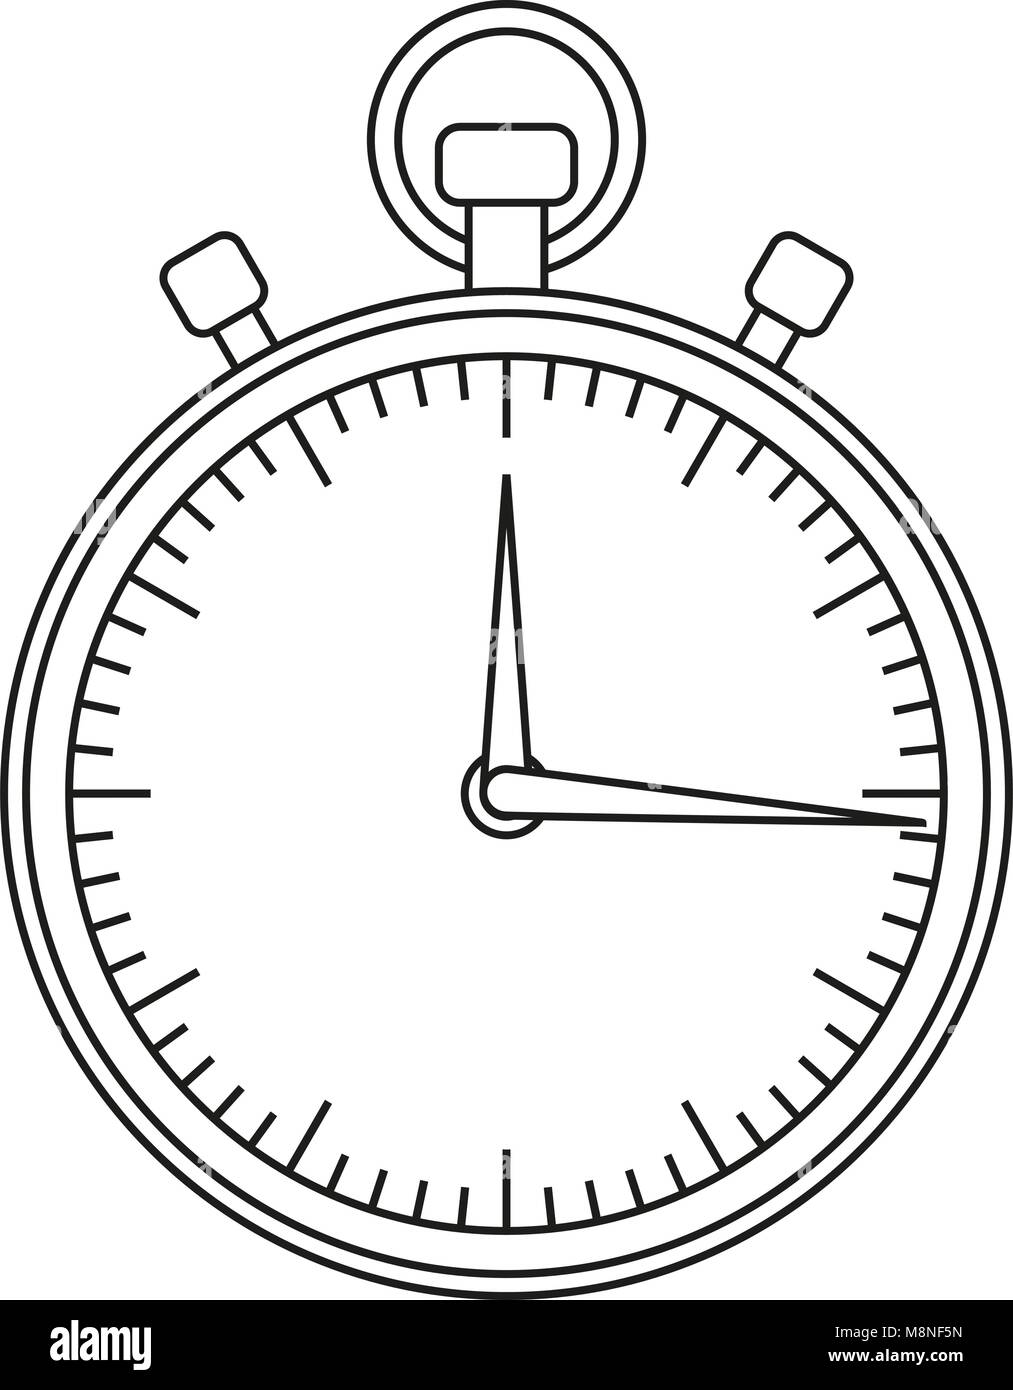 Line art black and white sport timer icon. - Stock Image